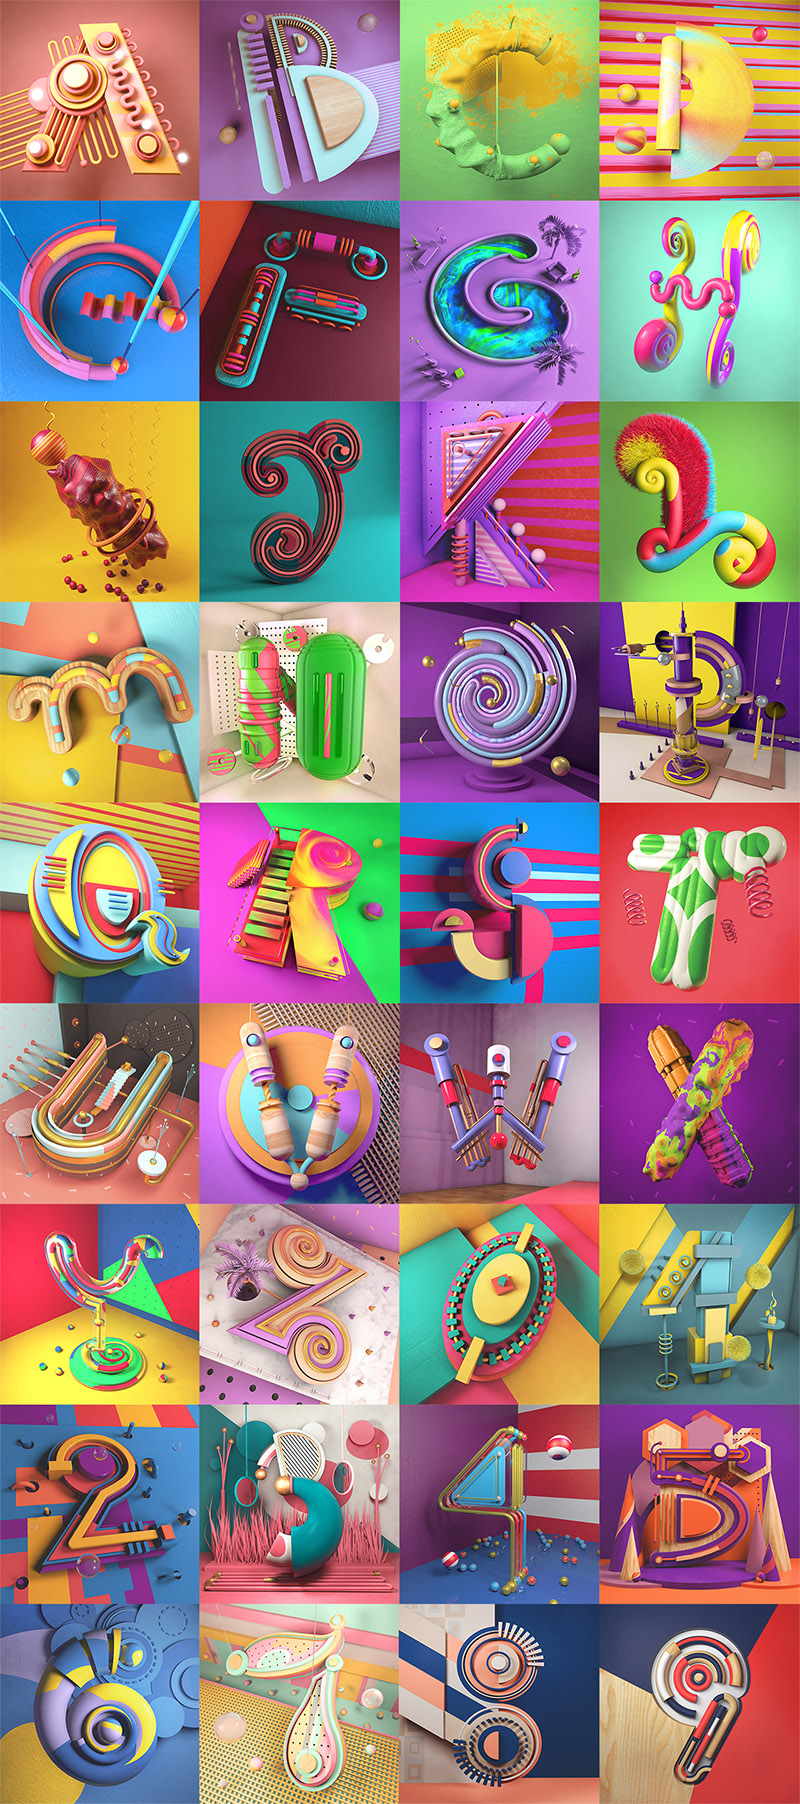 Illustrated Alphabet Project by Carlo Cadenas